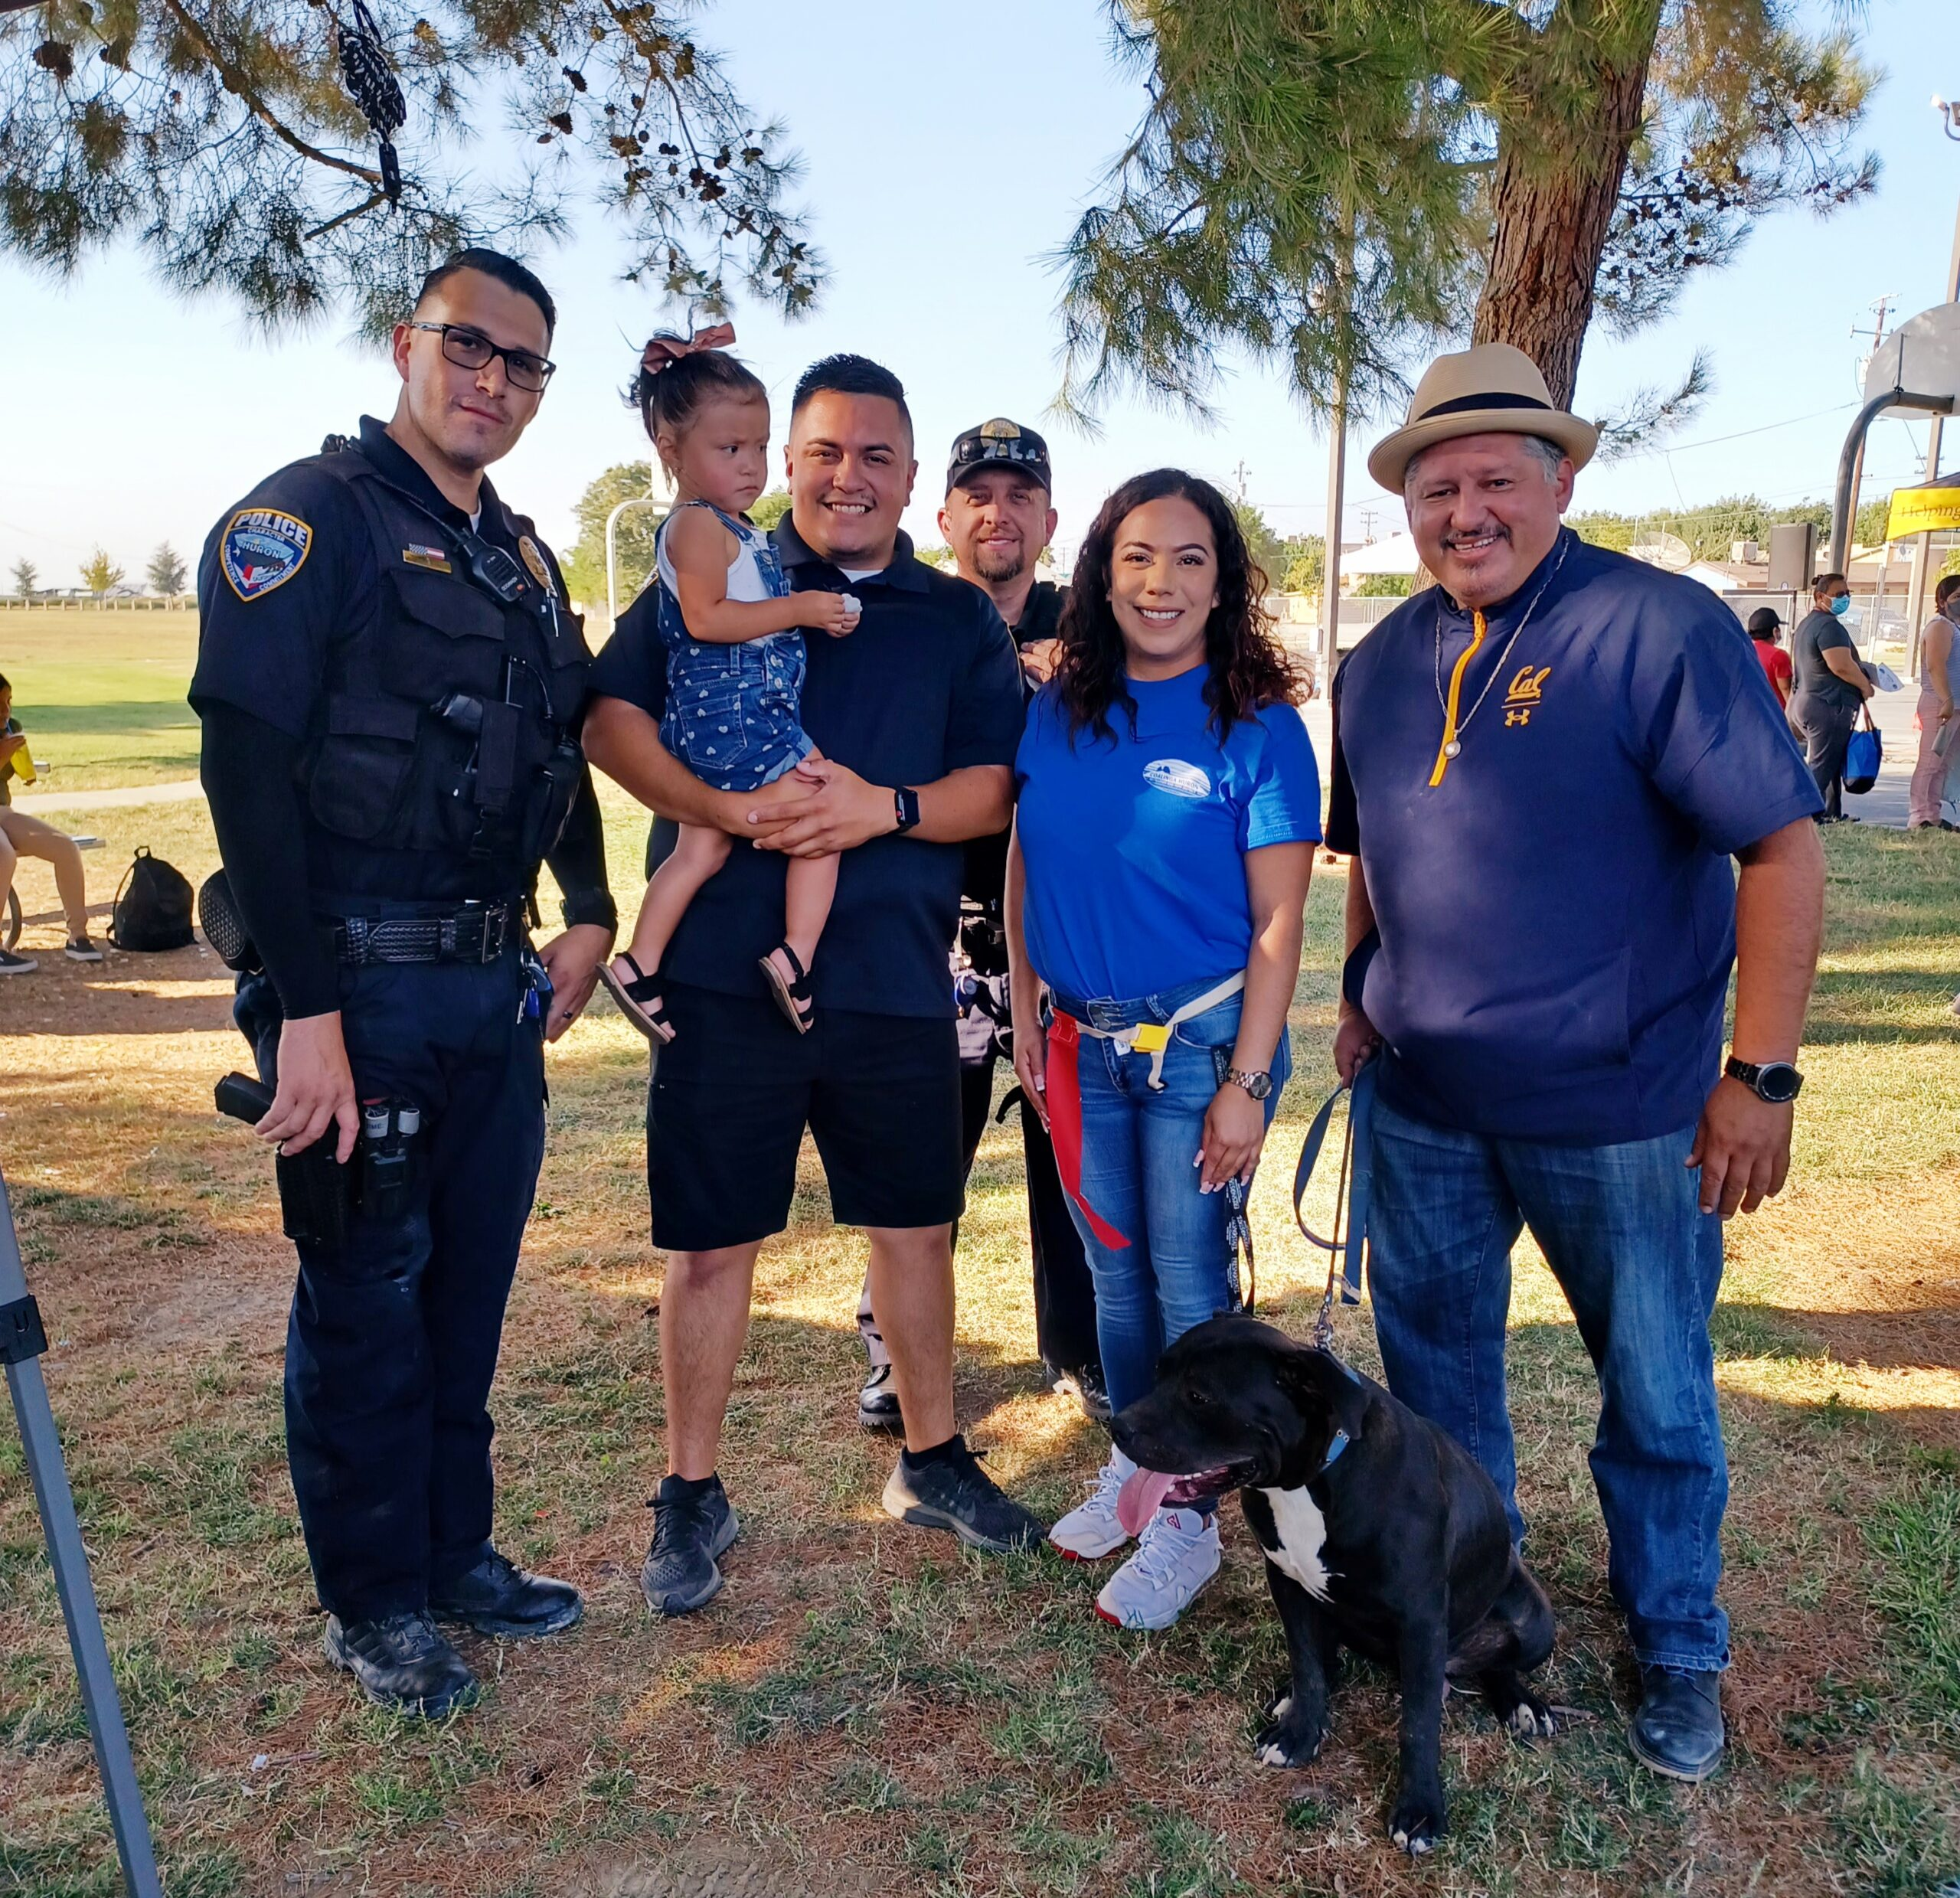 HURON NNO EVENT PICTURES 2021